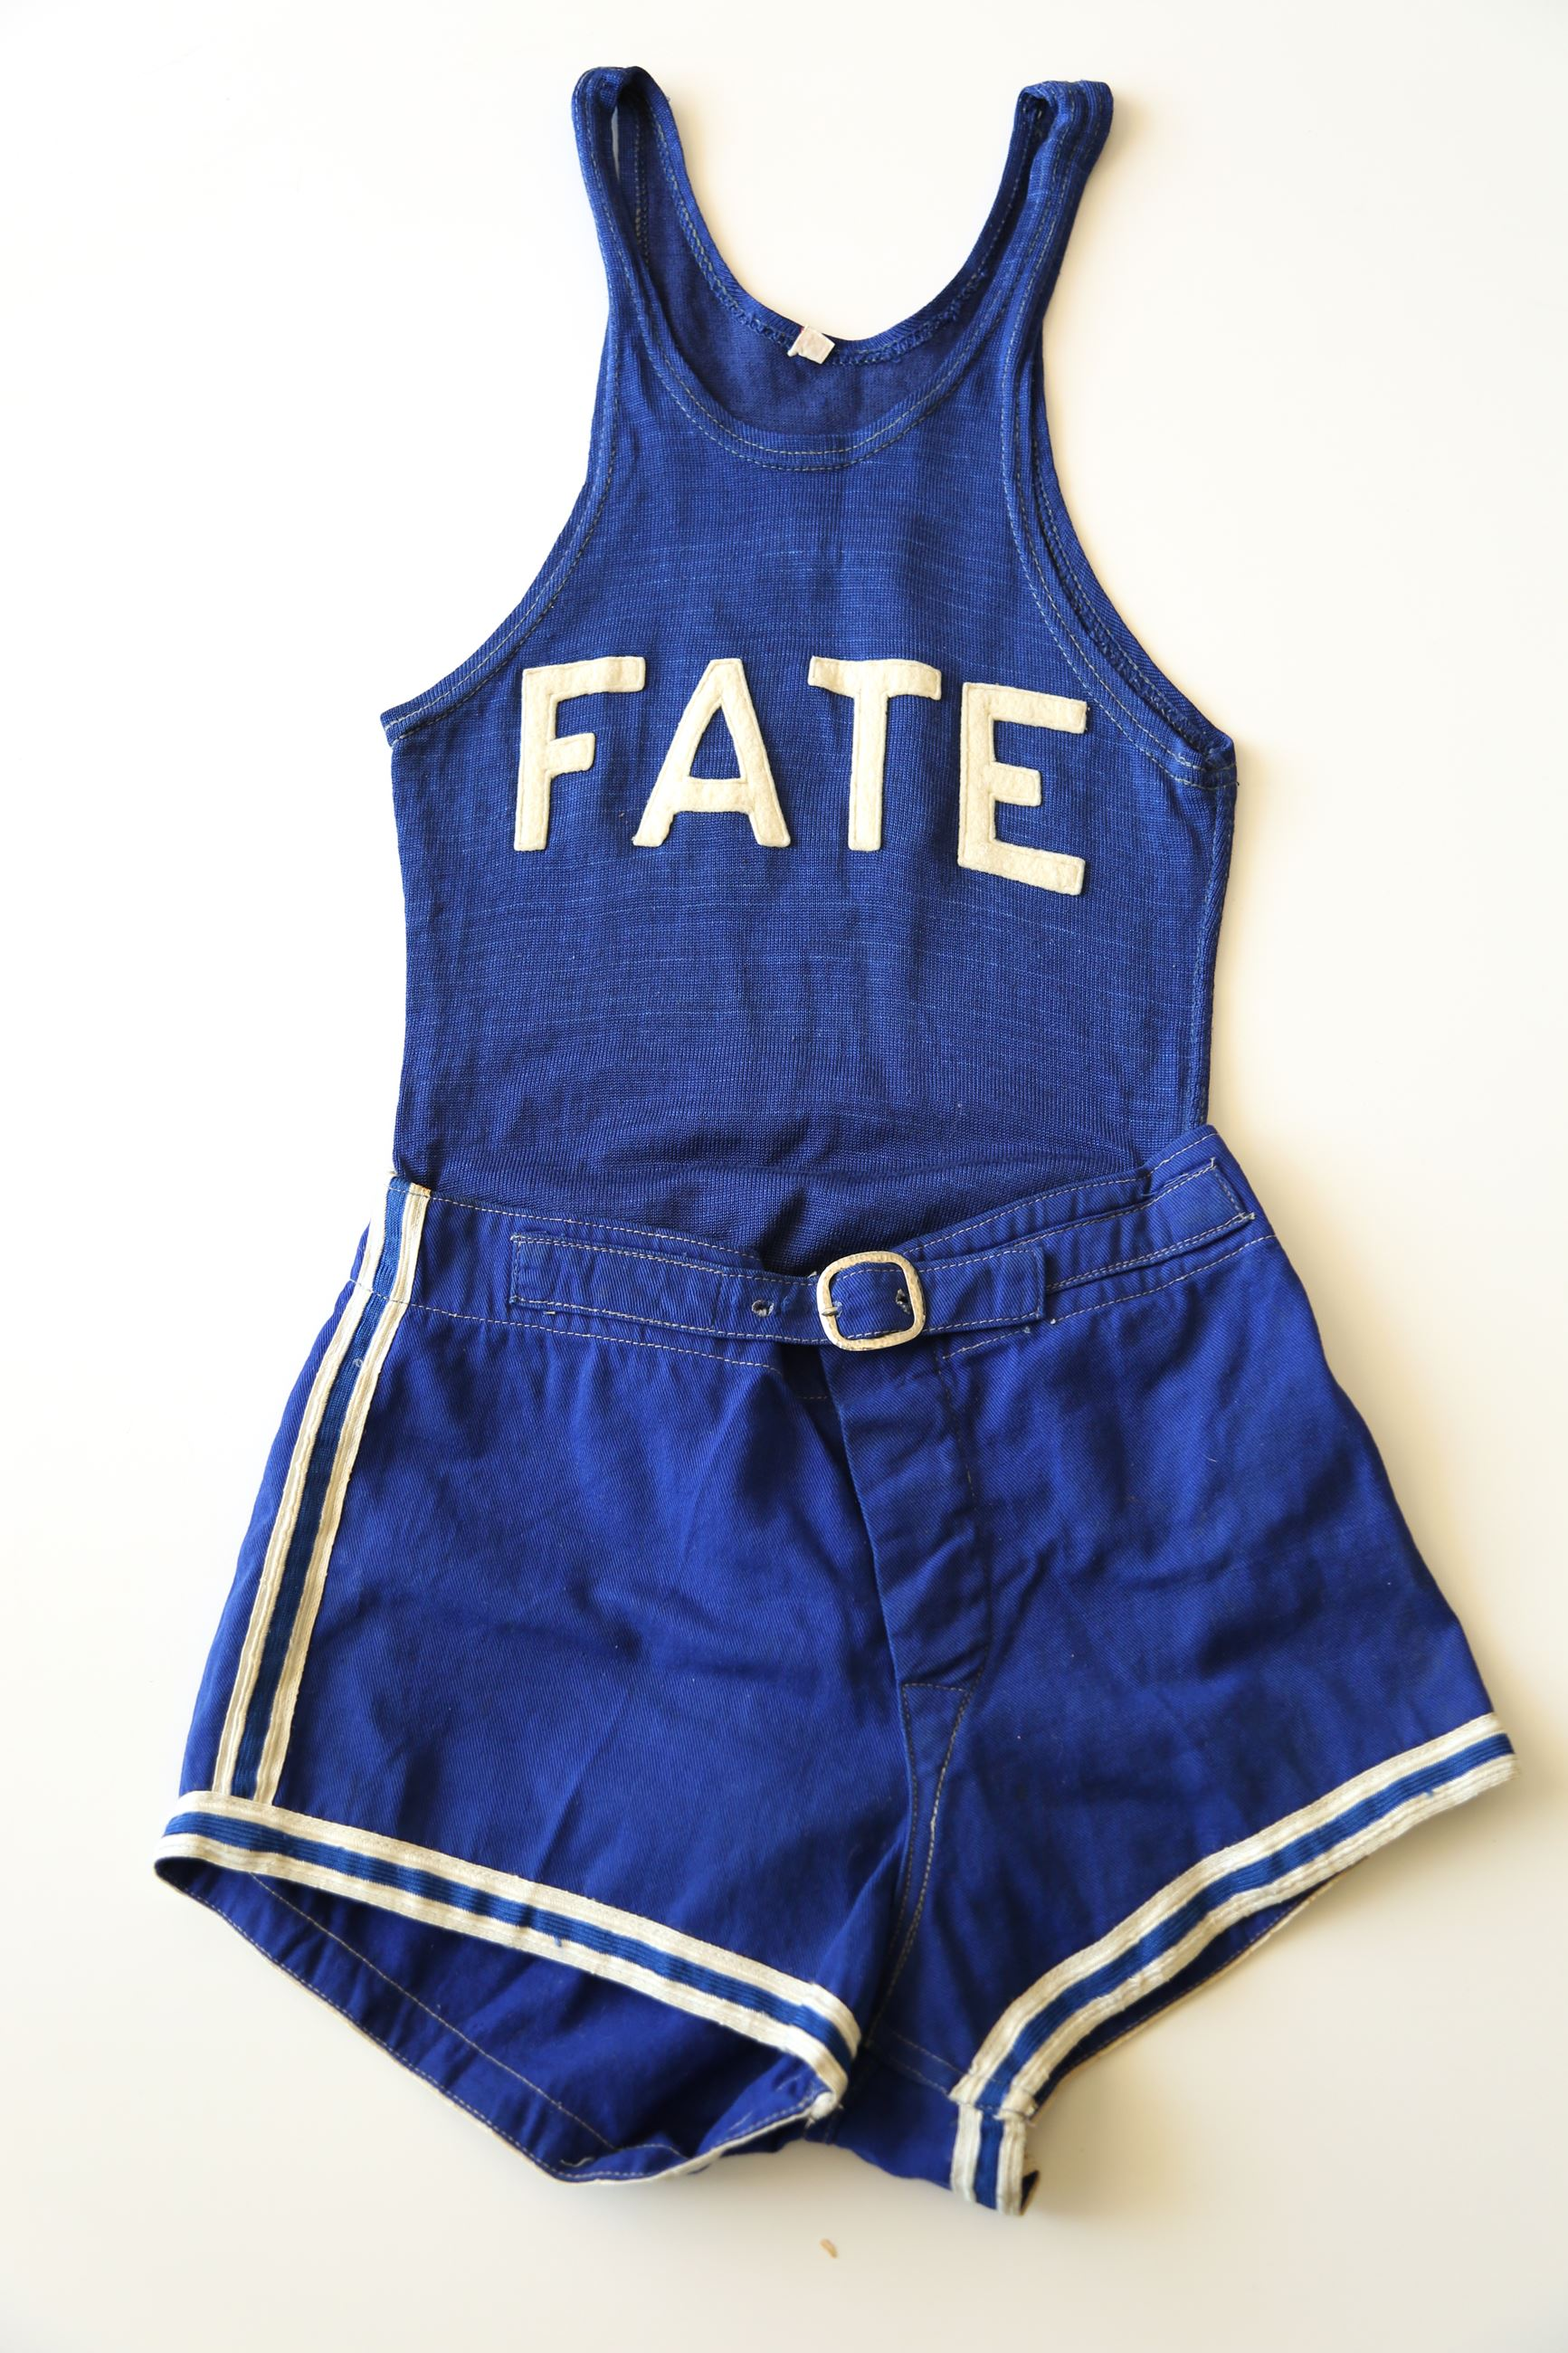 1935-36 Fate Cubs basketball uniform was worn by William E. -Billy- Crawford